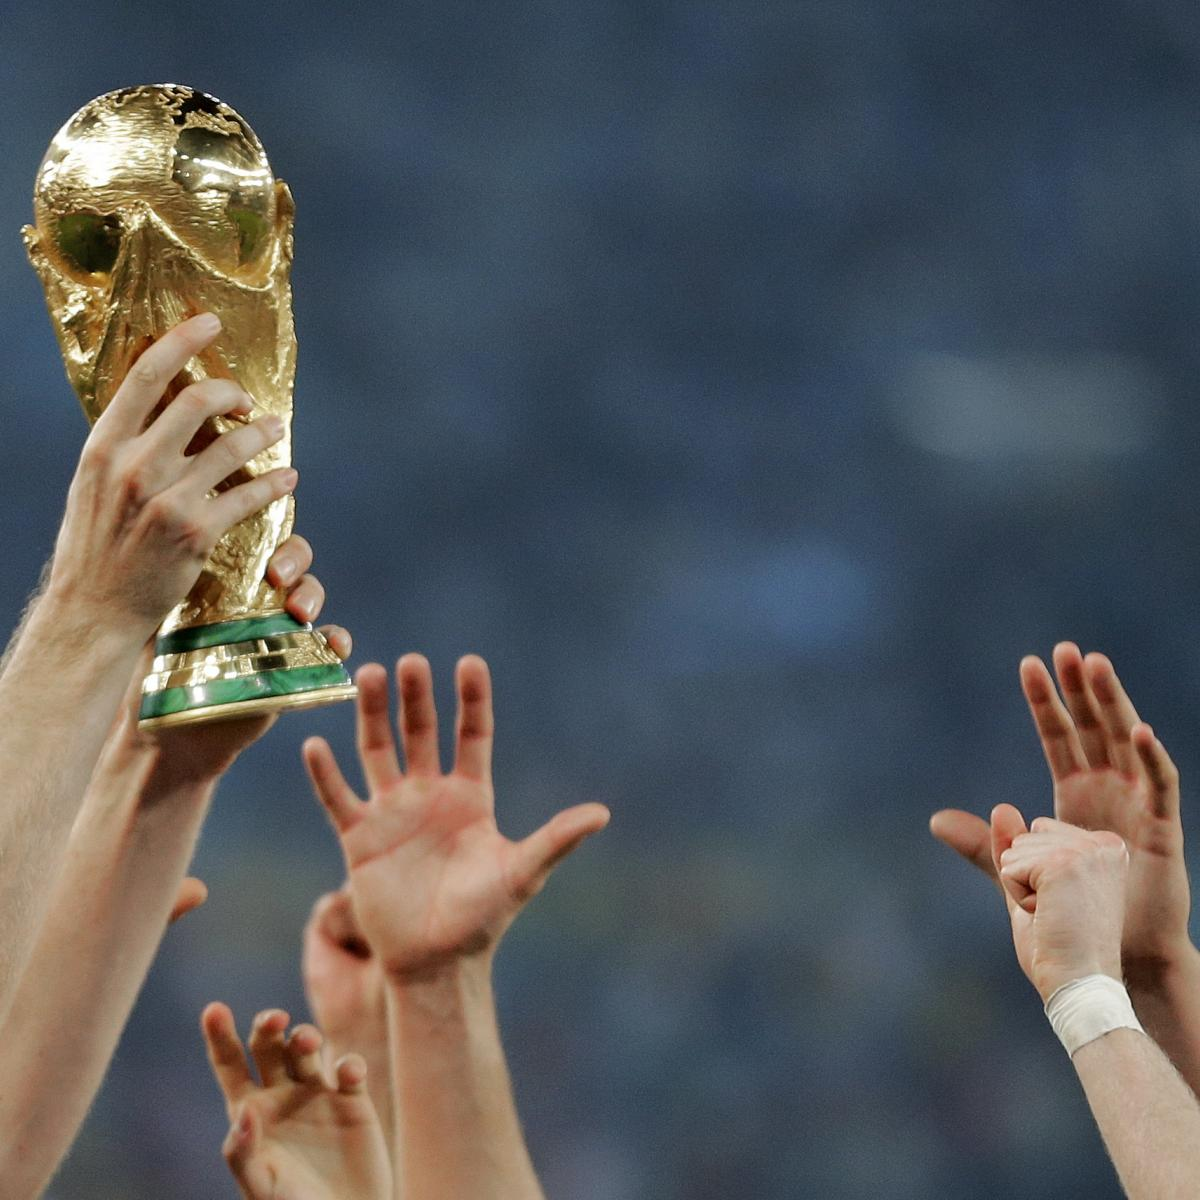 World Cup Schedule 2018: Full Fixtures and Kick-off Times for Every Match